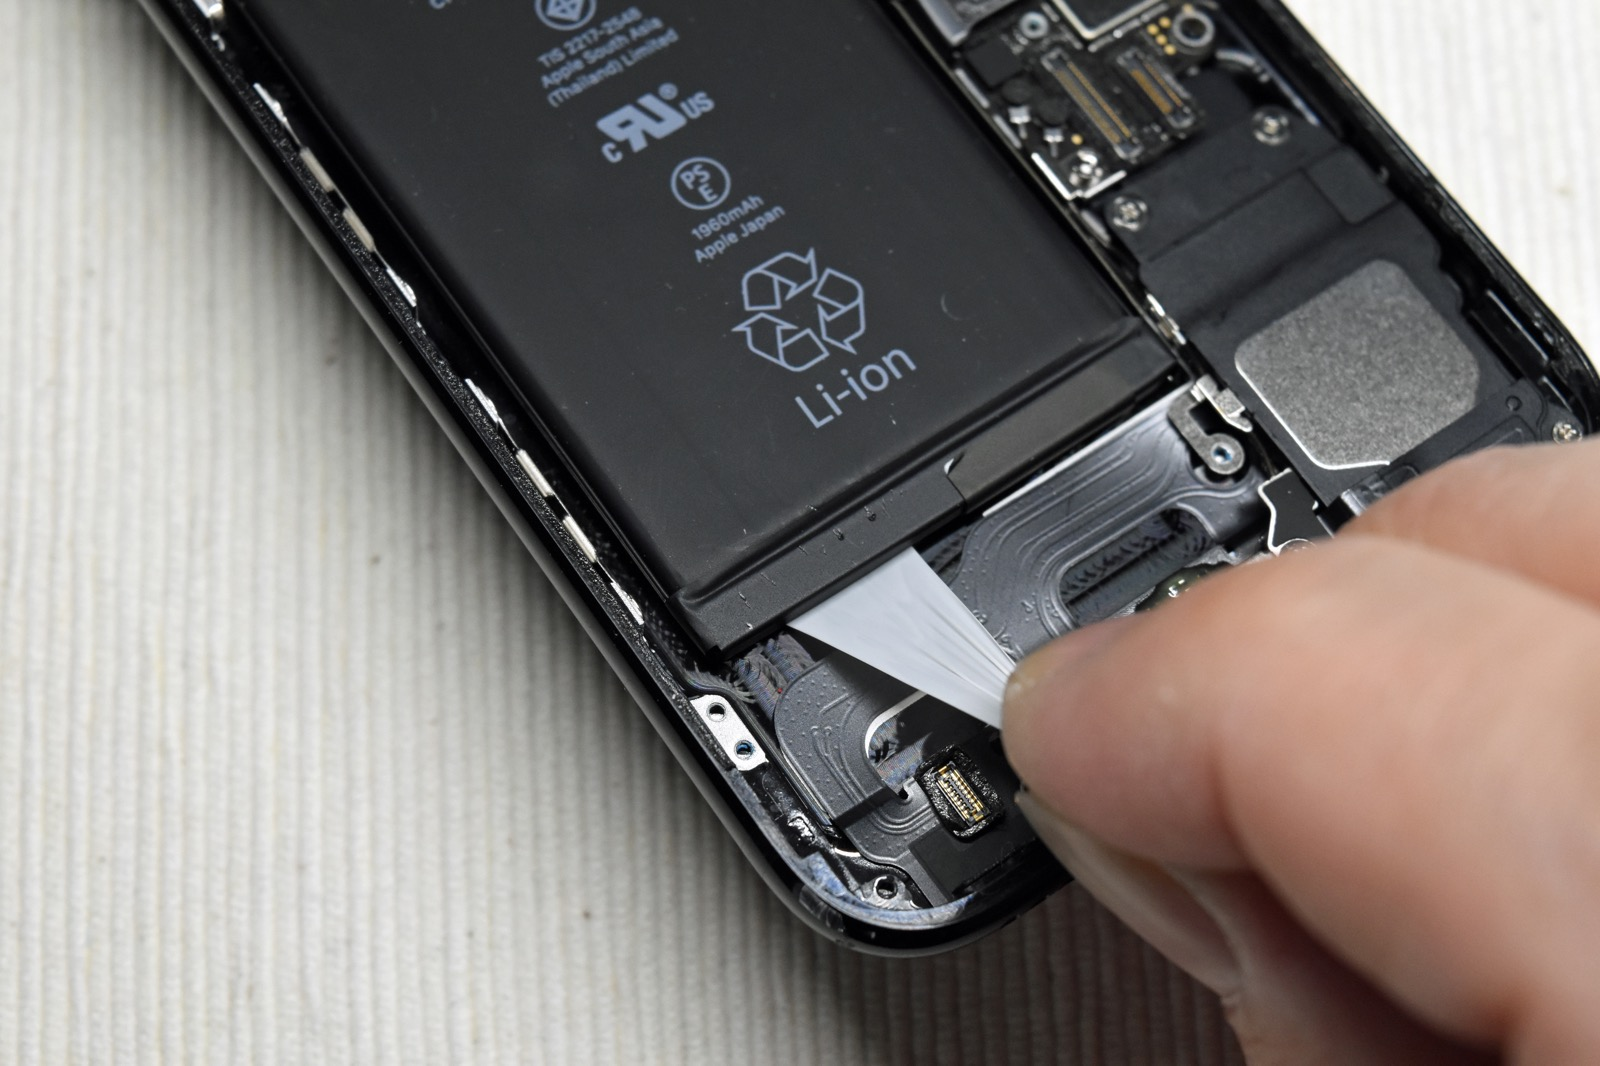 Iphone7 battery 11